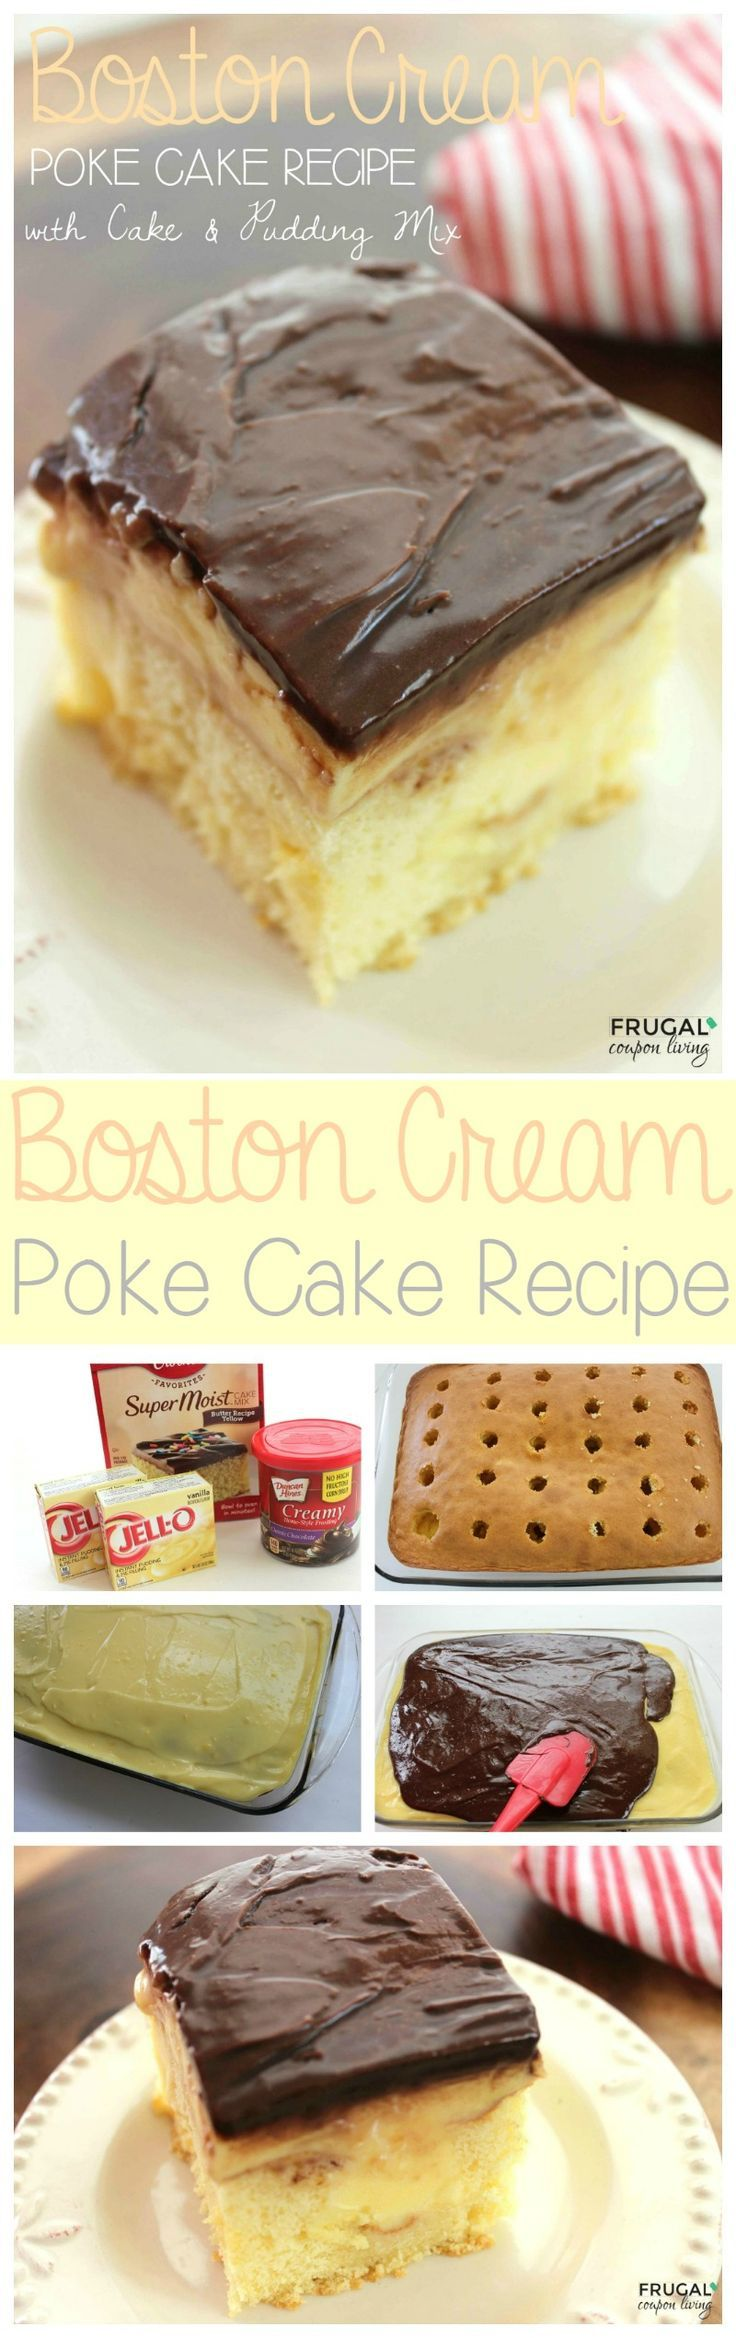 Boston Cream Poke Cake using Pudding Mix and Cake Mix on Frugal Coupon Living